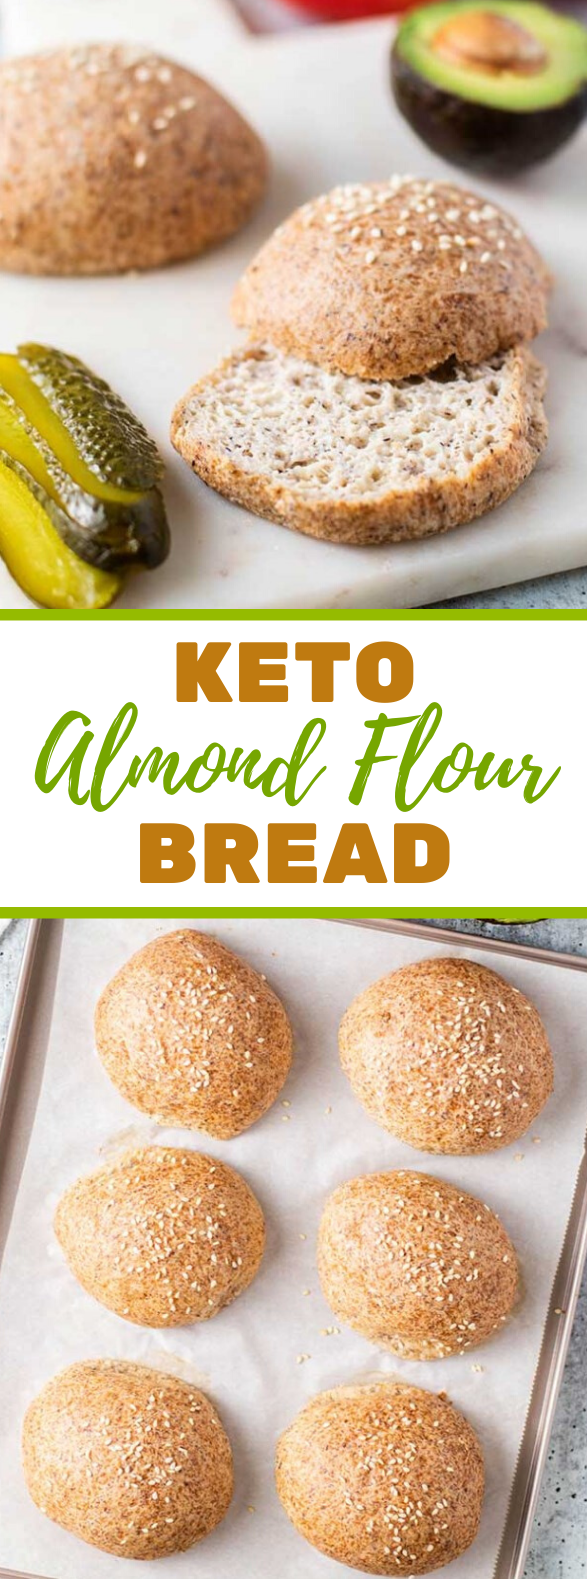 Keto Bread Rolls #sandwiches #healthy